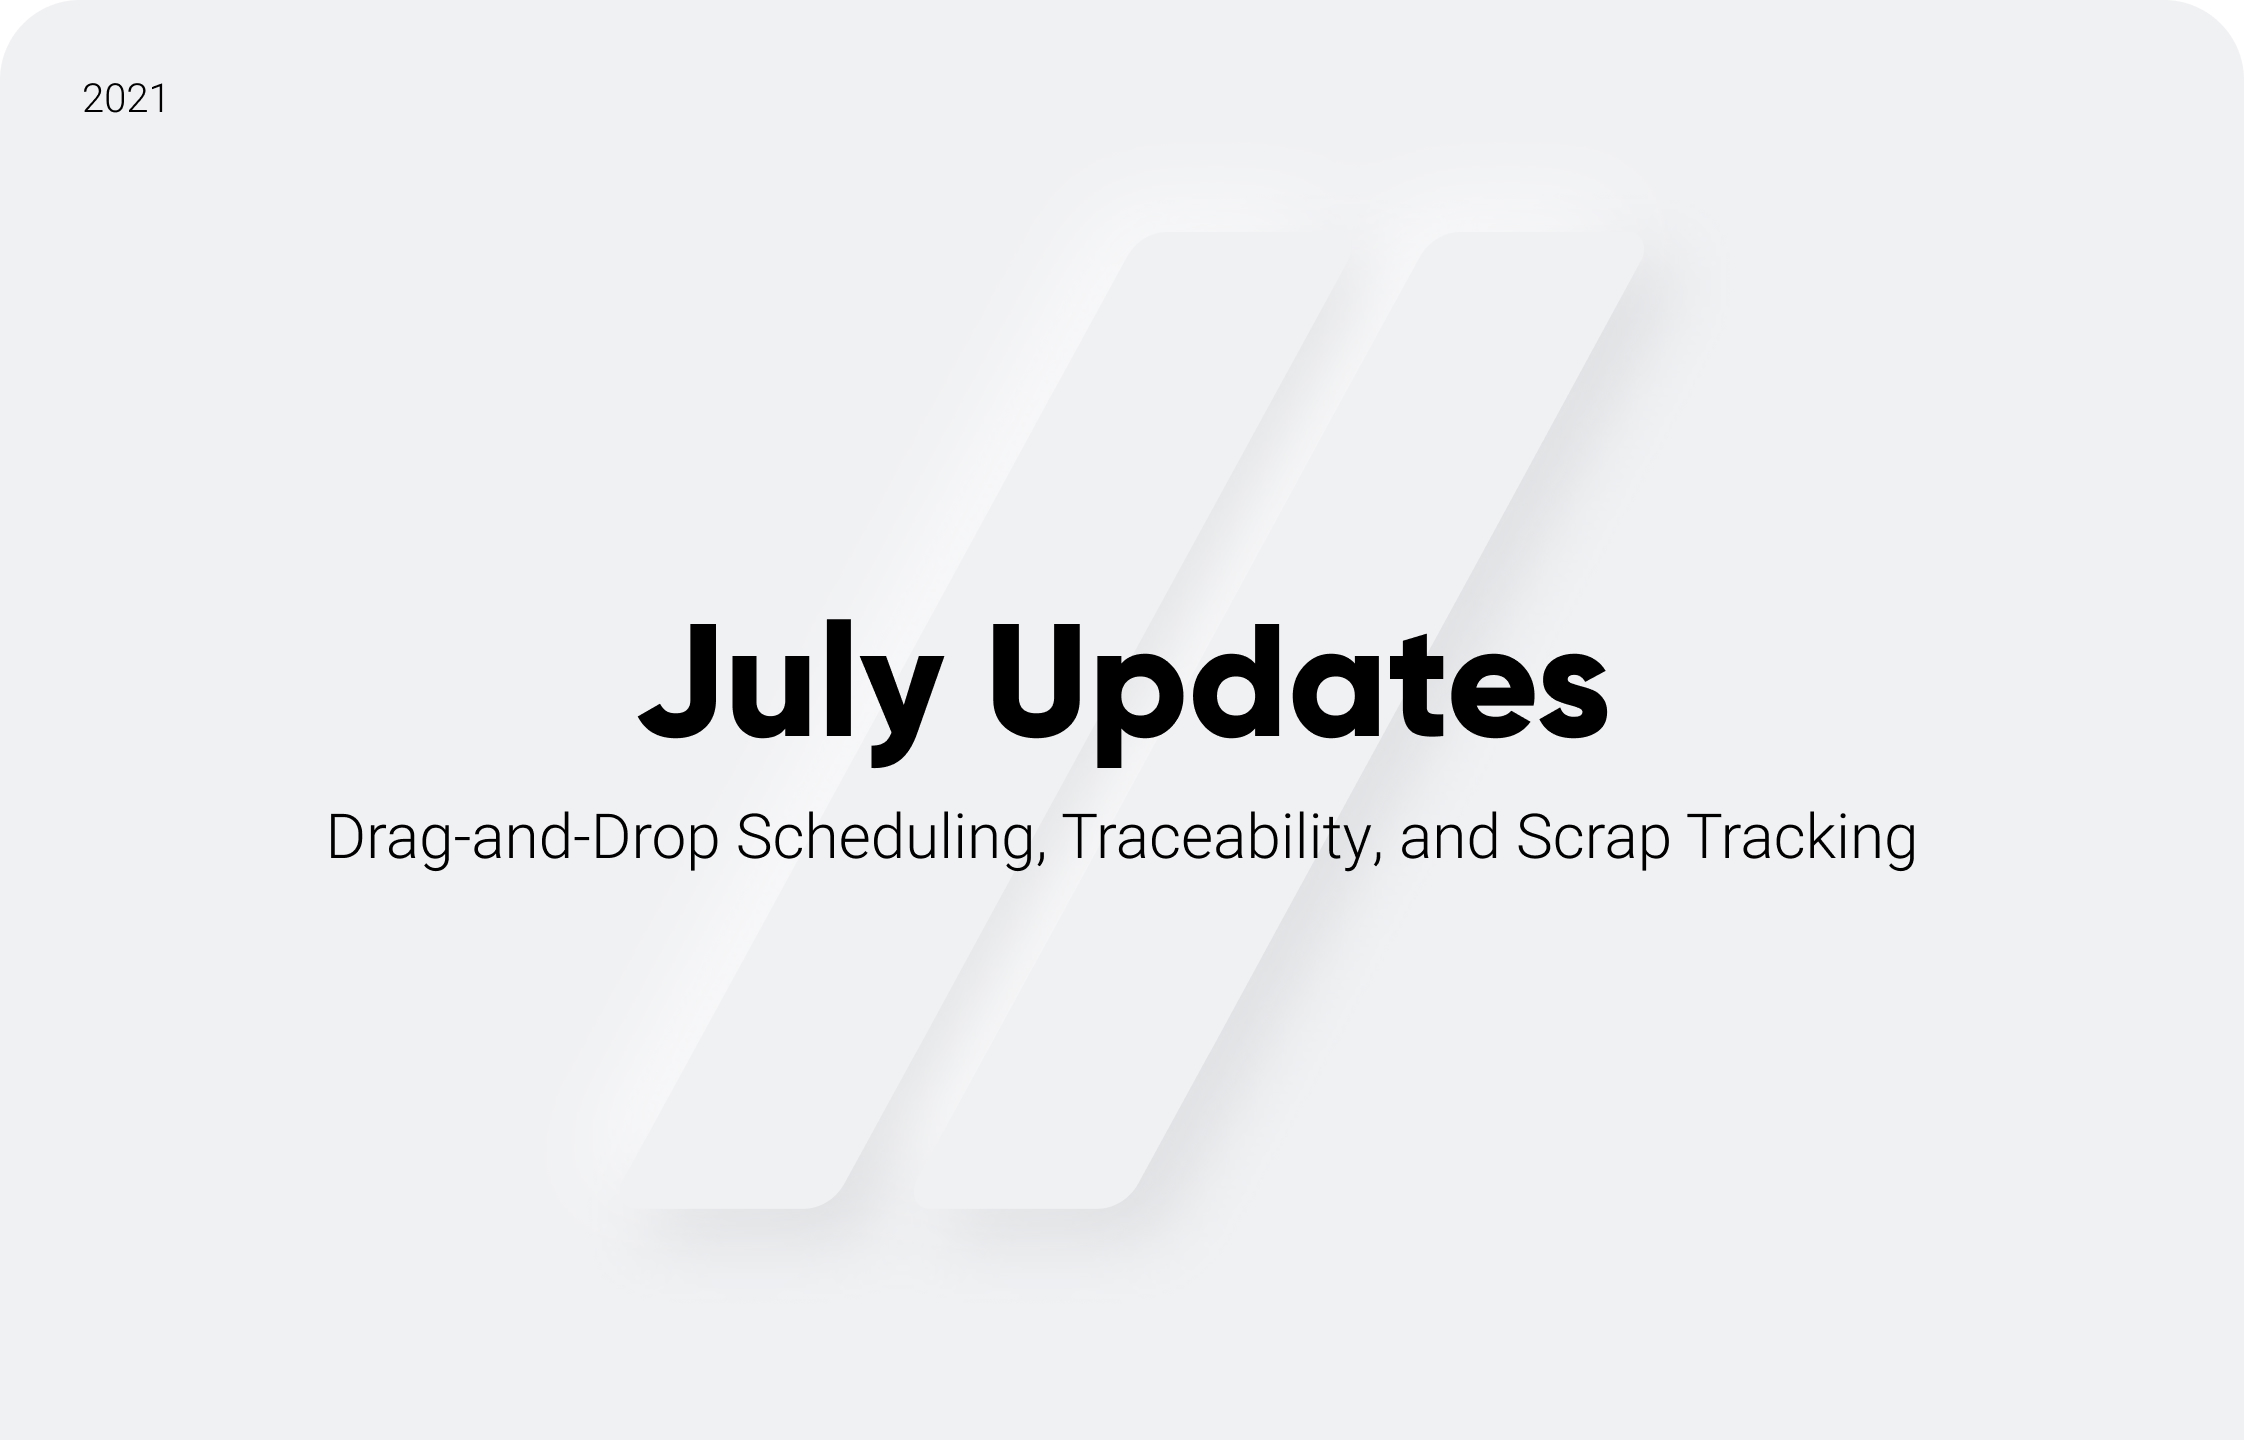 July Updates: Drag-and-Drop Scheduling, Traceability, and Scrap Tracking